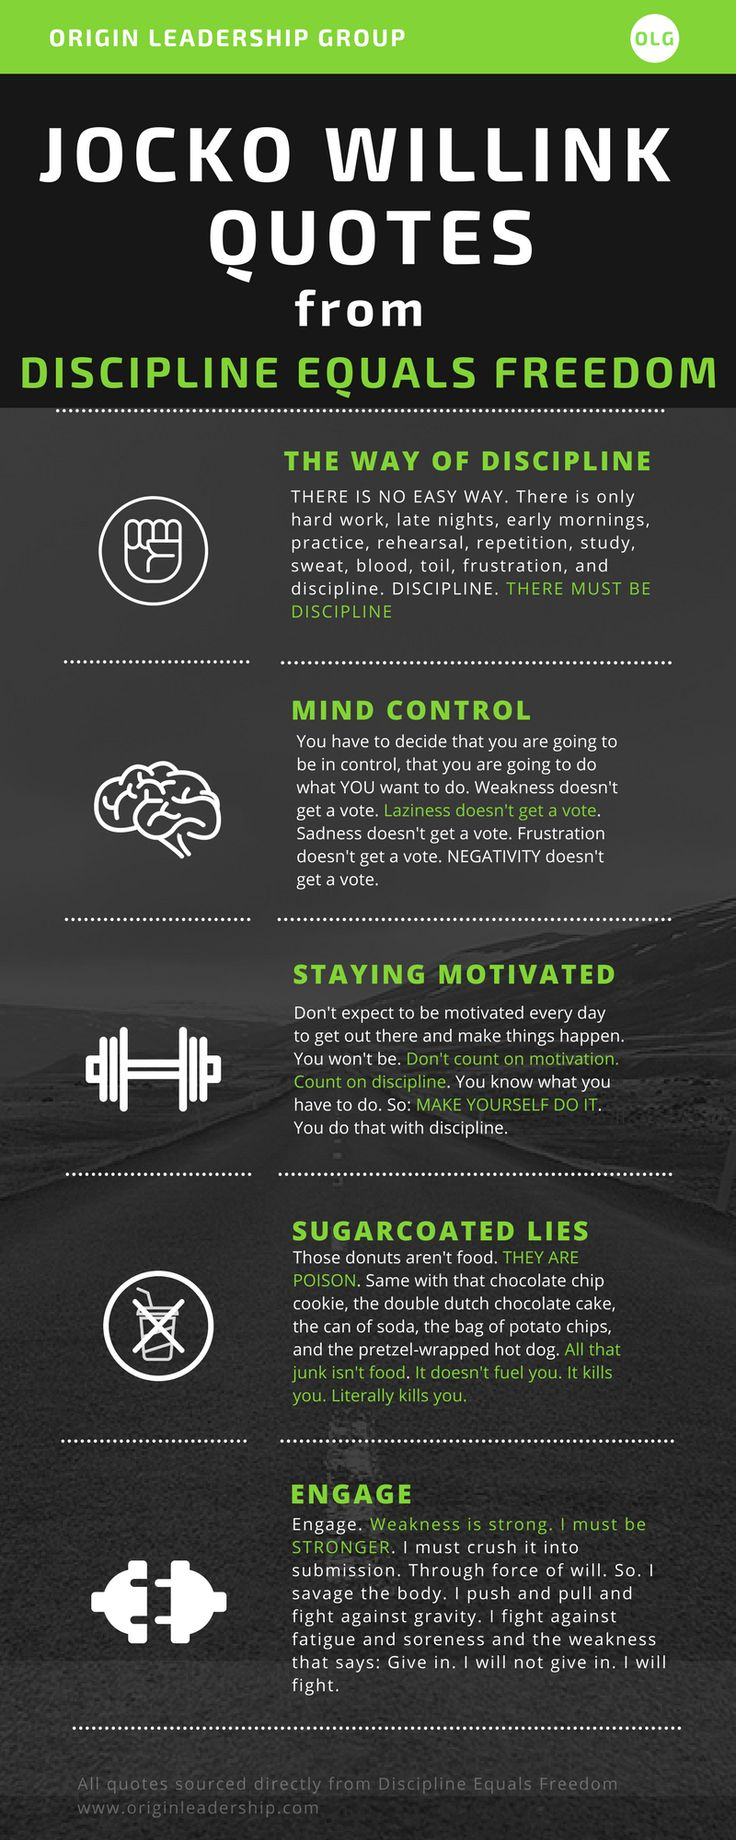 Latest 31 Phenomenal Jocko Willink Quotes from Discipline Equals Freedom. Get [Infographic] #infographic 3